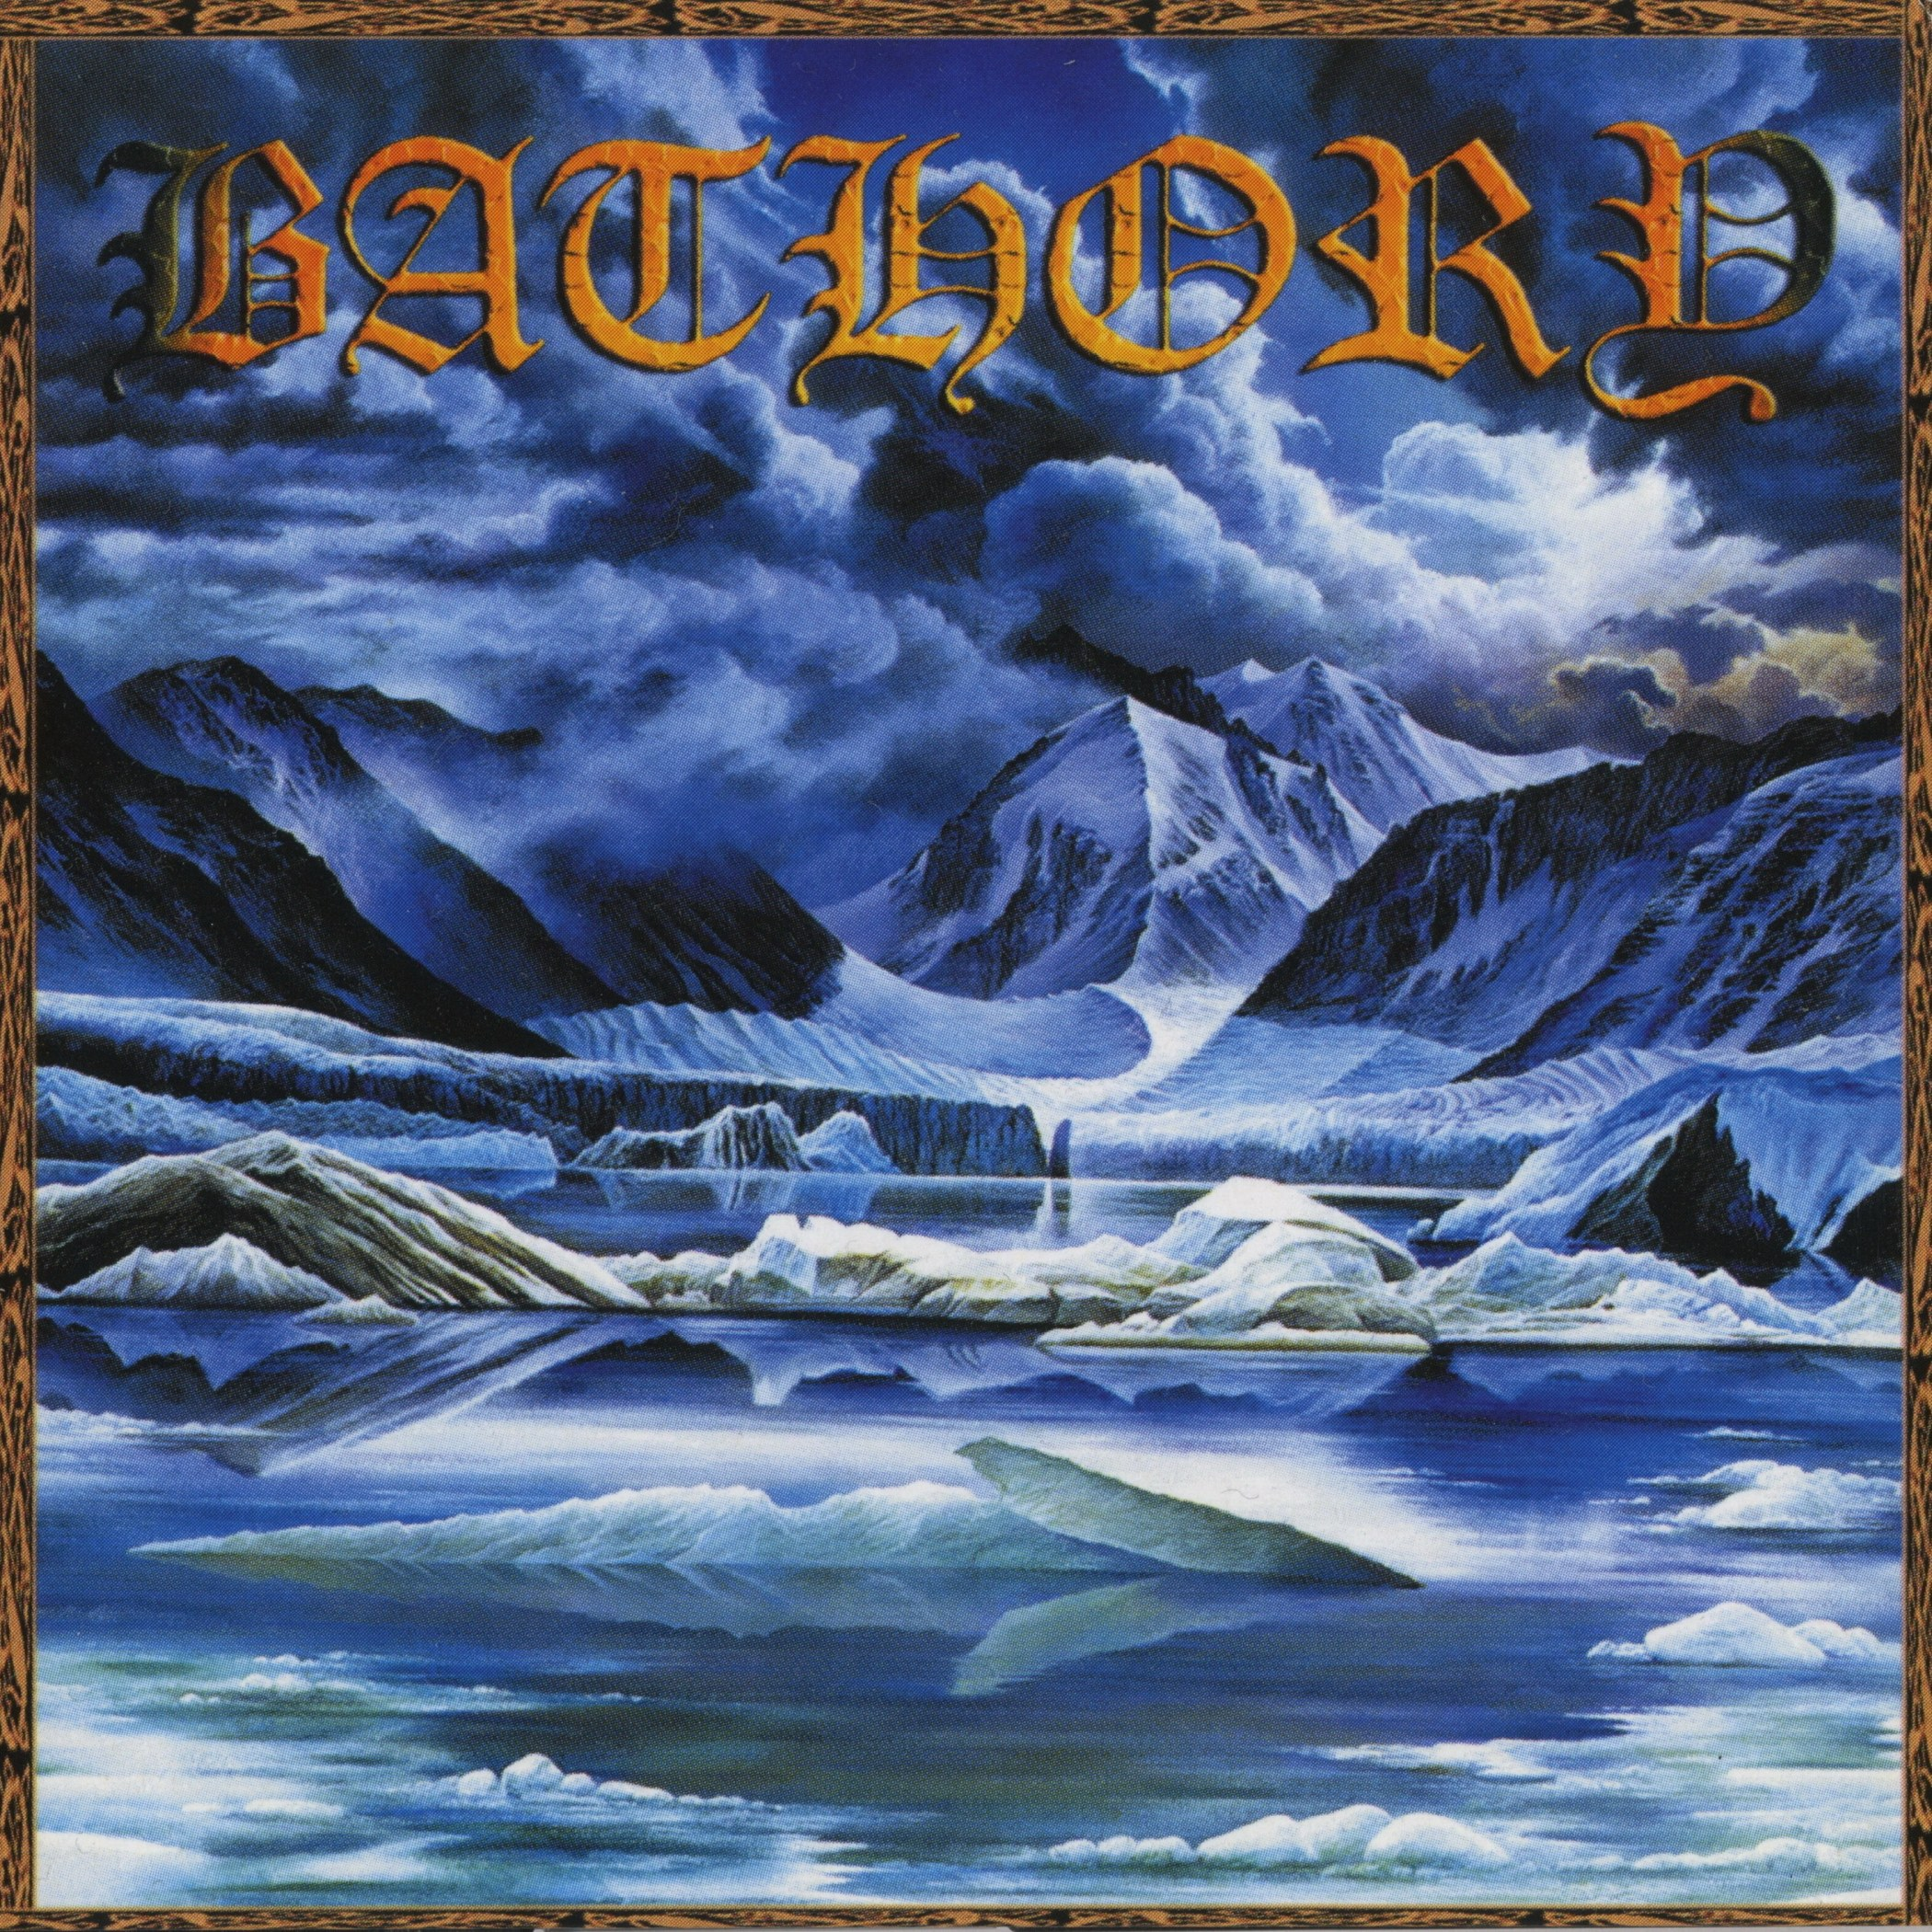 Review for Bathory - Nordland I